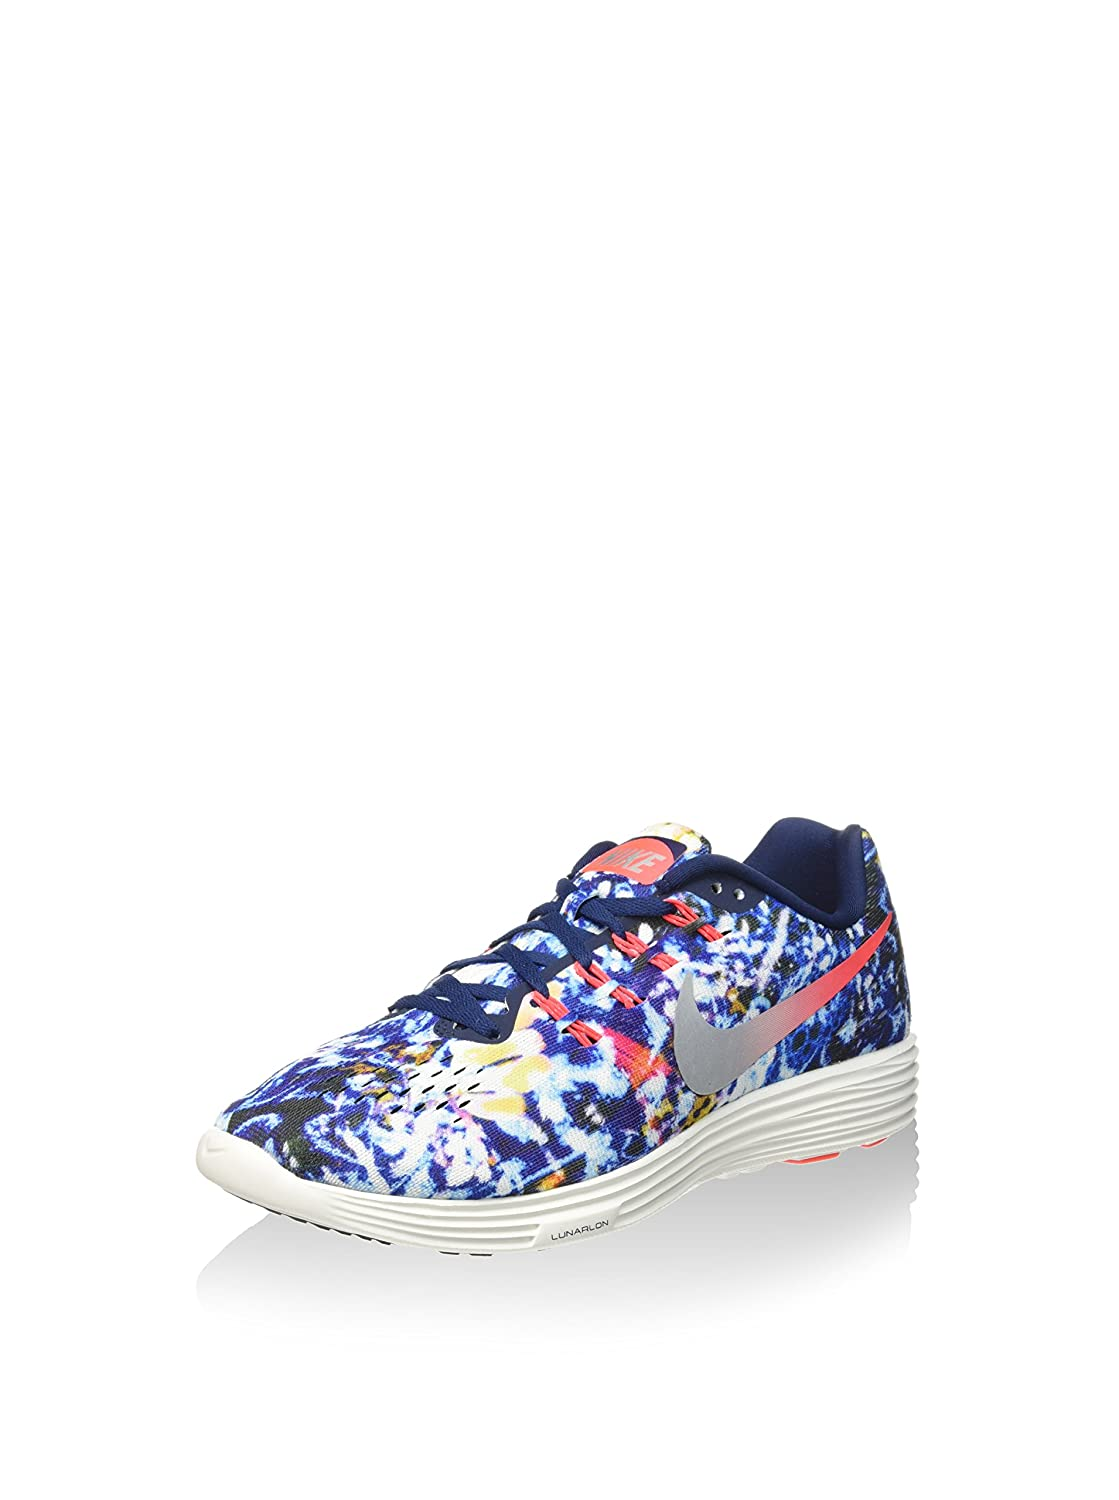 outlet store 49fcf 1f3ab Amazon.com  Nike Lunartempo 2 Rf E Running Mens Shoes  Runni